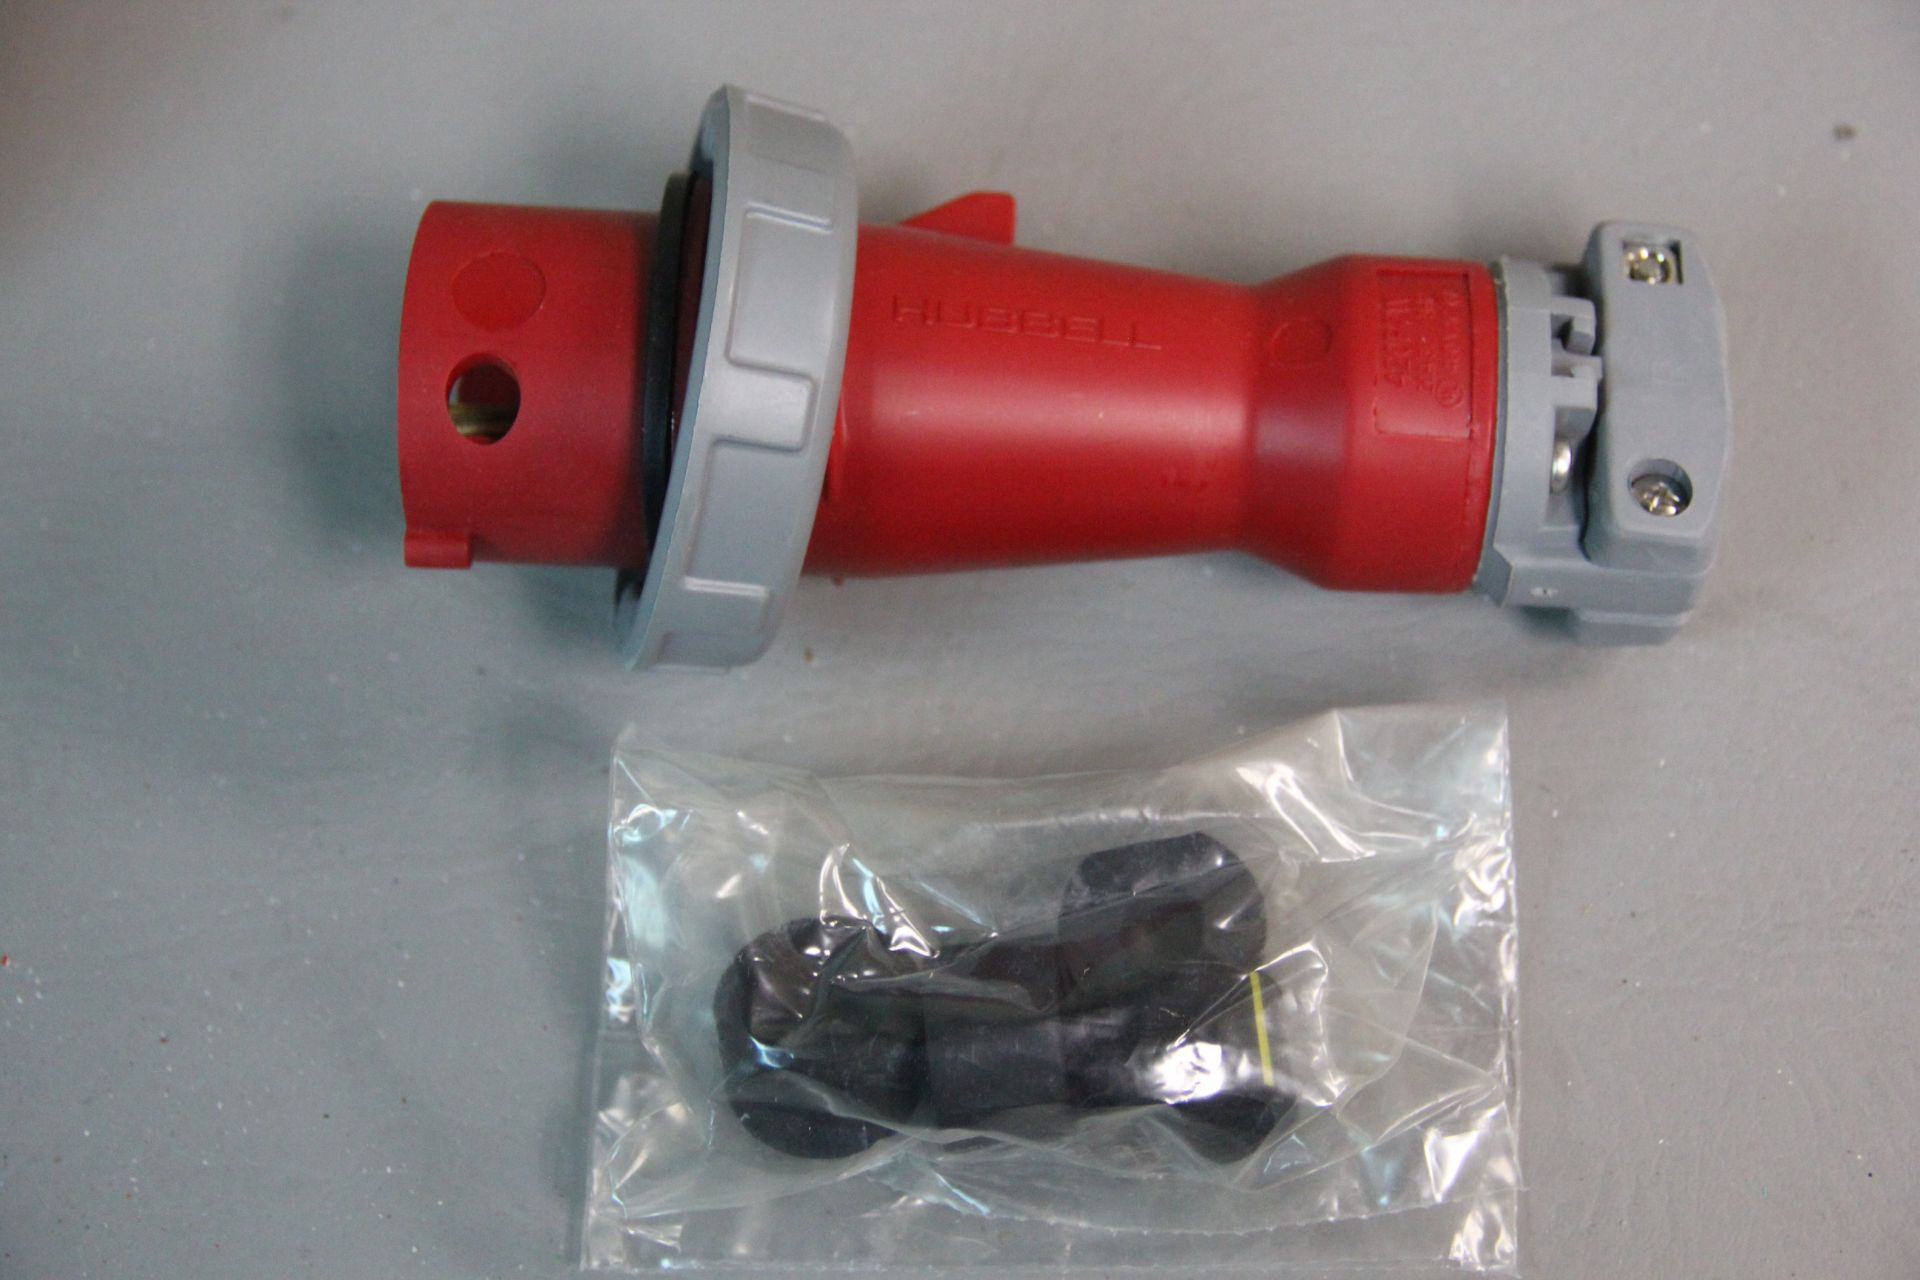 NEW HUBBELL PIN & SLEEVE WATERTIGHT ELECTRICAL PLUG - Image 2 of 4